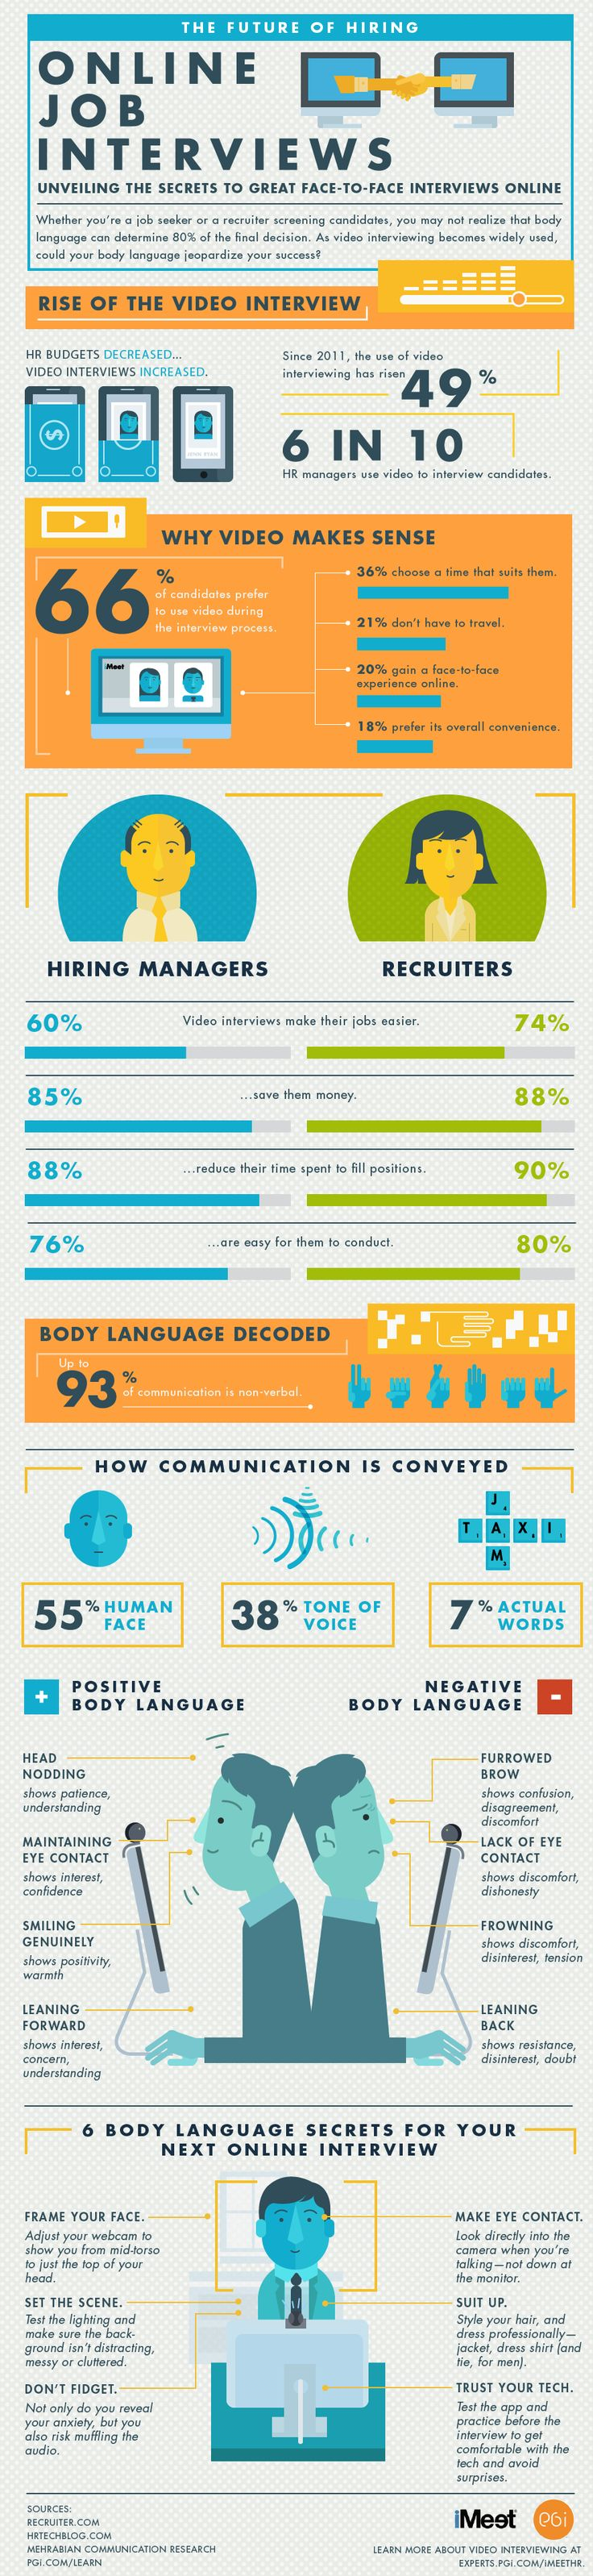 Online Job Interviews - Unveiling the secrets to great face-to-face interviews online PGI online job interview infographic